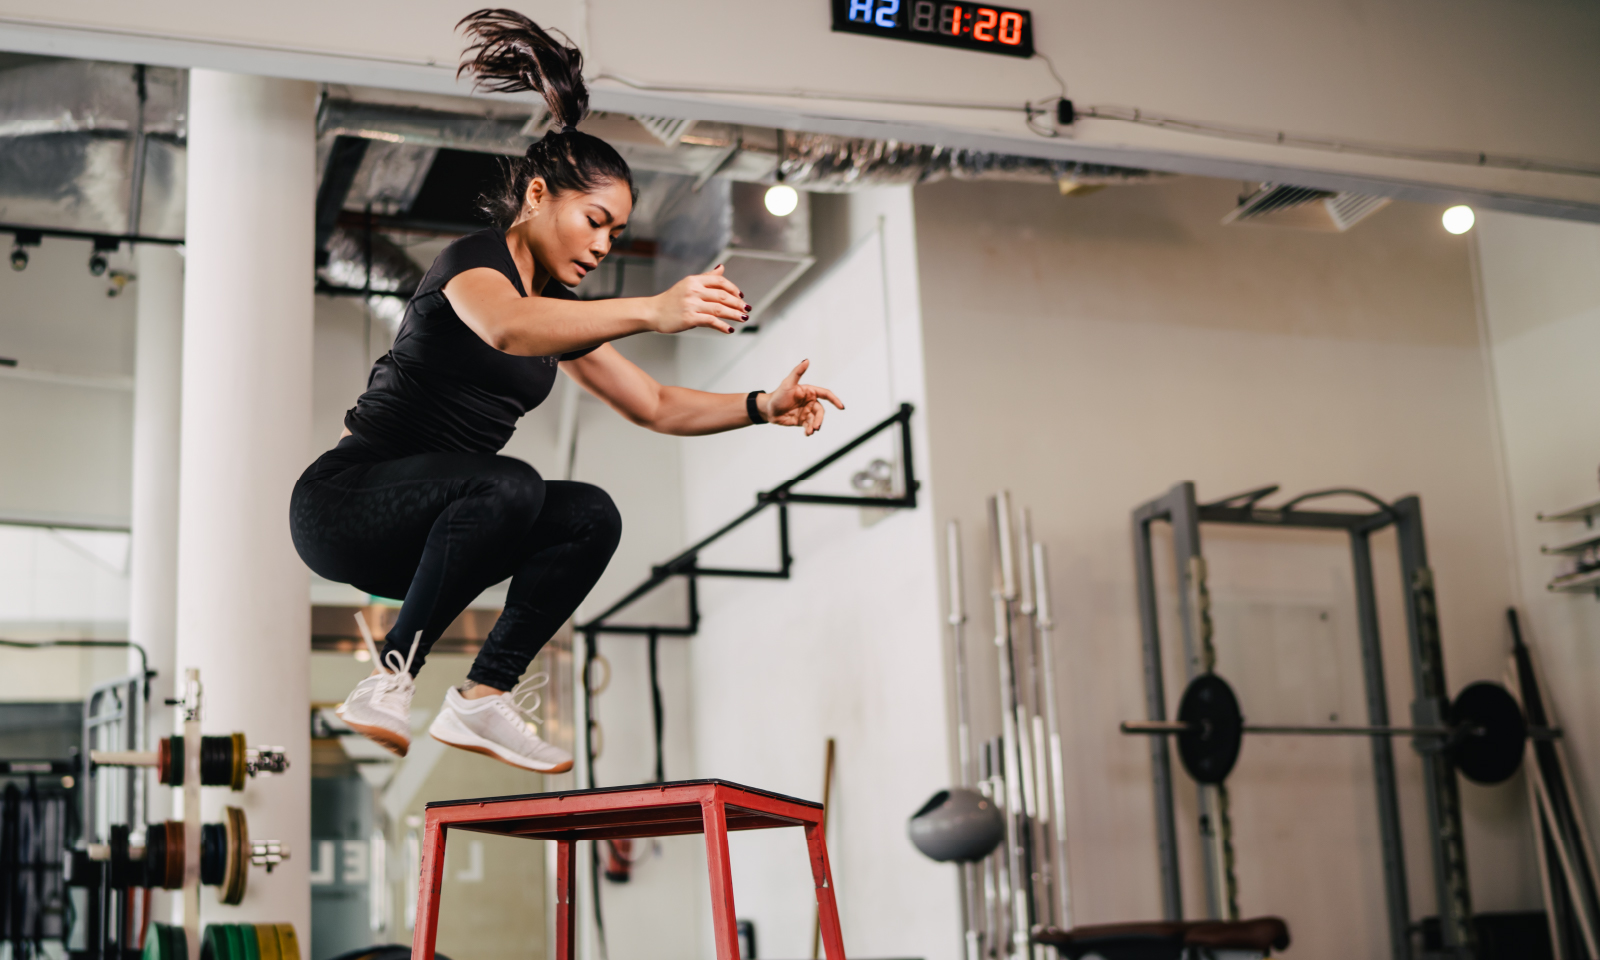 An image of a women jumping in Level